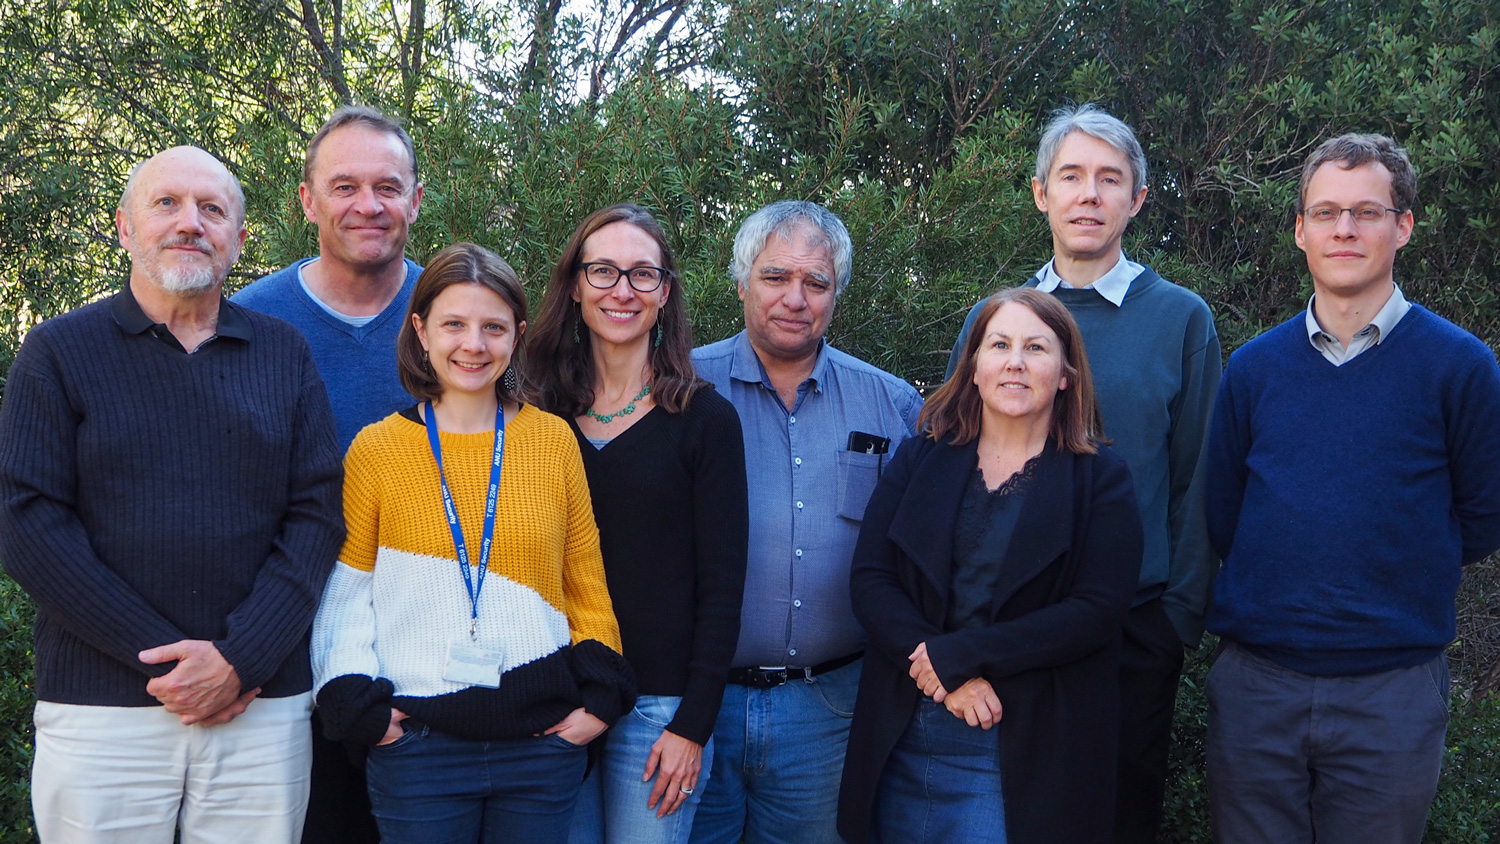 AusPass team left to right: Dr Herb McQueen, Prof Malcolm Sambridge, Dr Julia Pfeffer, As Prof Meghan Miller, Armando Arcidiaco, Dr Michelle Salmon, Dr Julian Byrne and Dr Sebastien Allgeyer. Image: Dr Michelle Salmon.